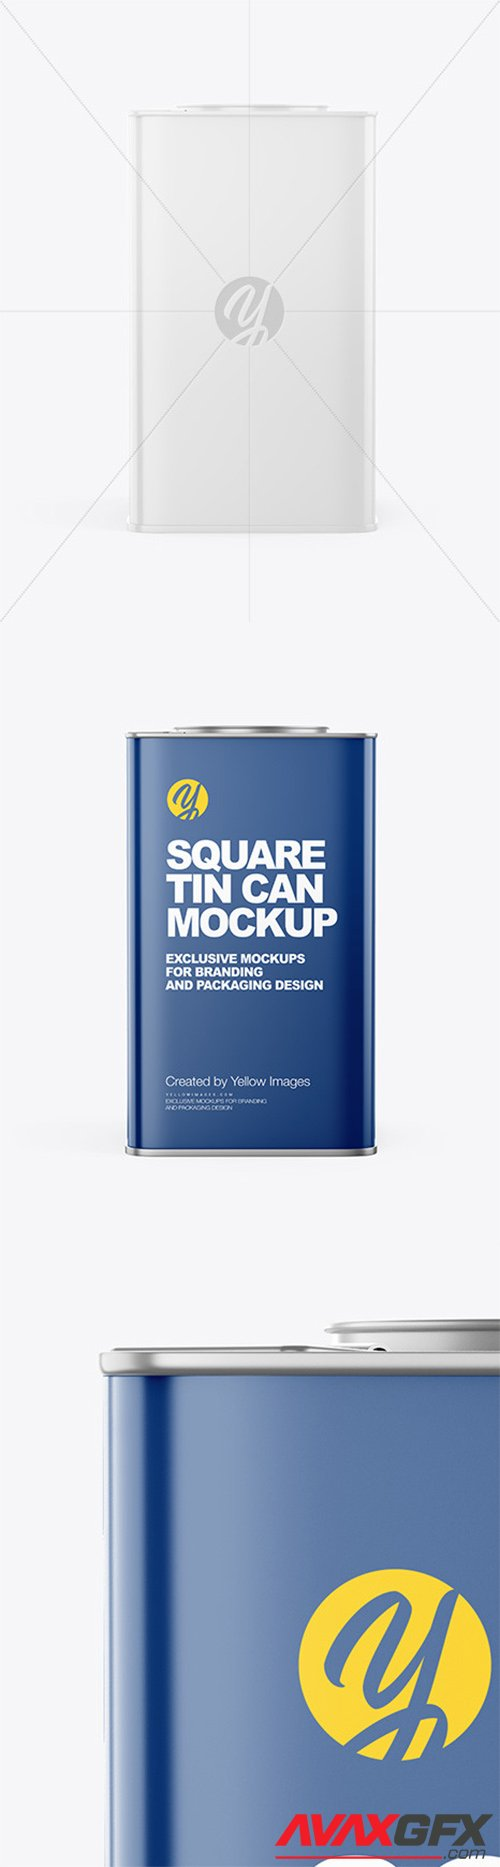 Glossy Square Tin Can Mockup 65339